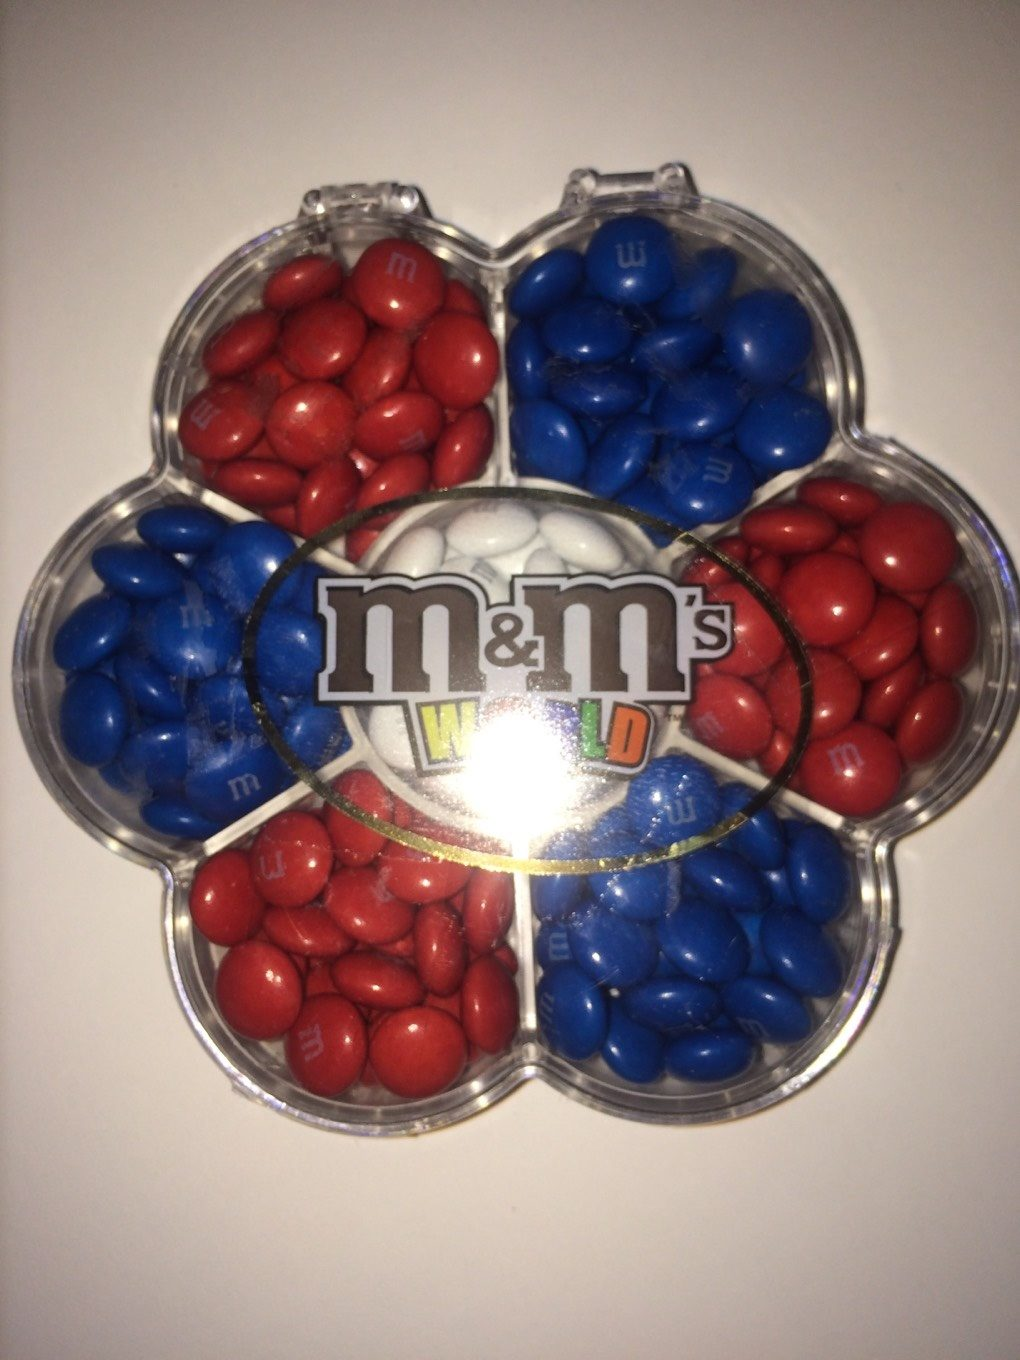 M&M's World : Flower - Produit - en